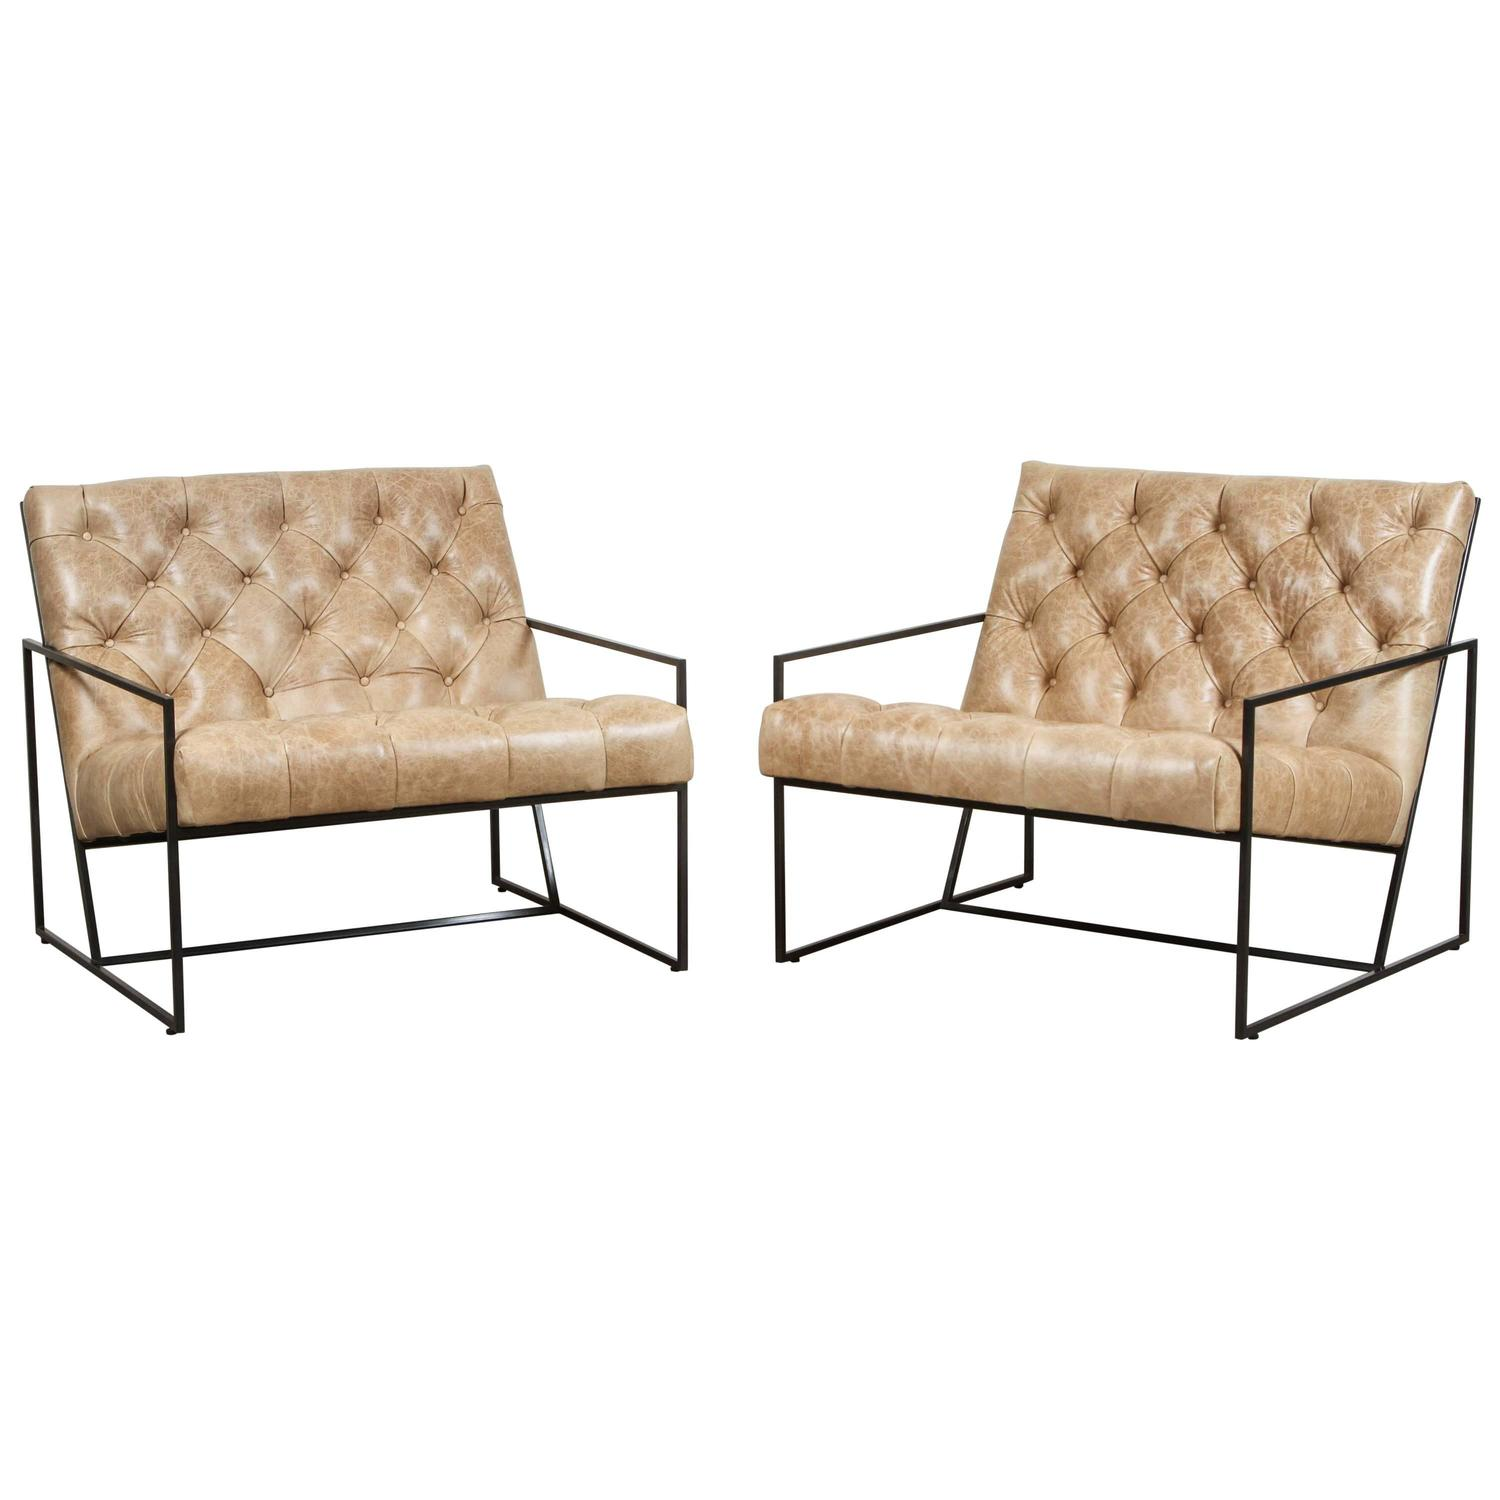 Pair of Tufted Thin Frame Lounge Chair by Lawson Fenning For Sale